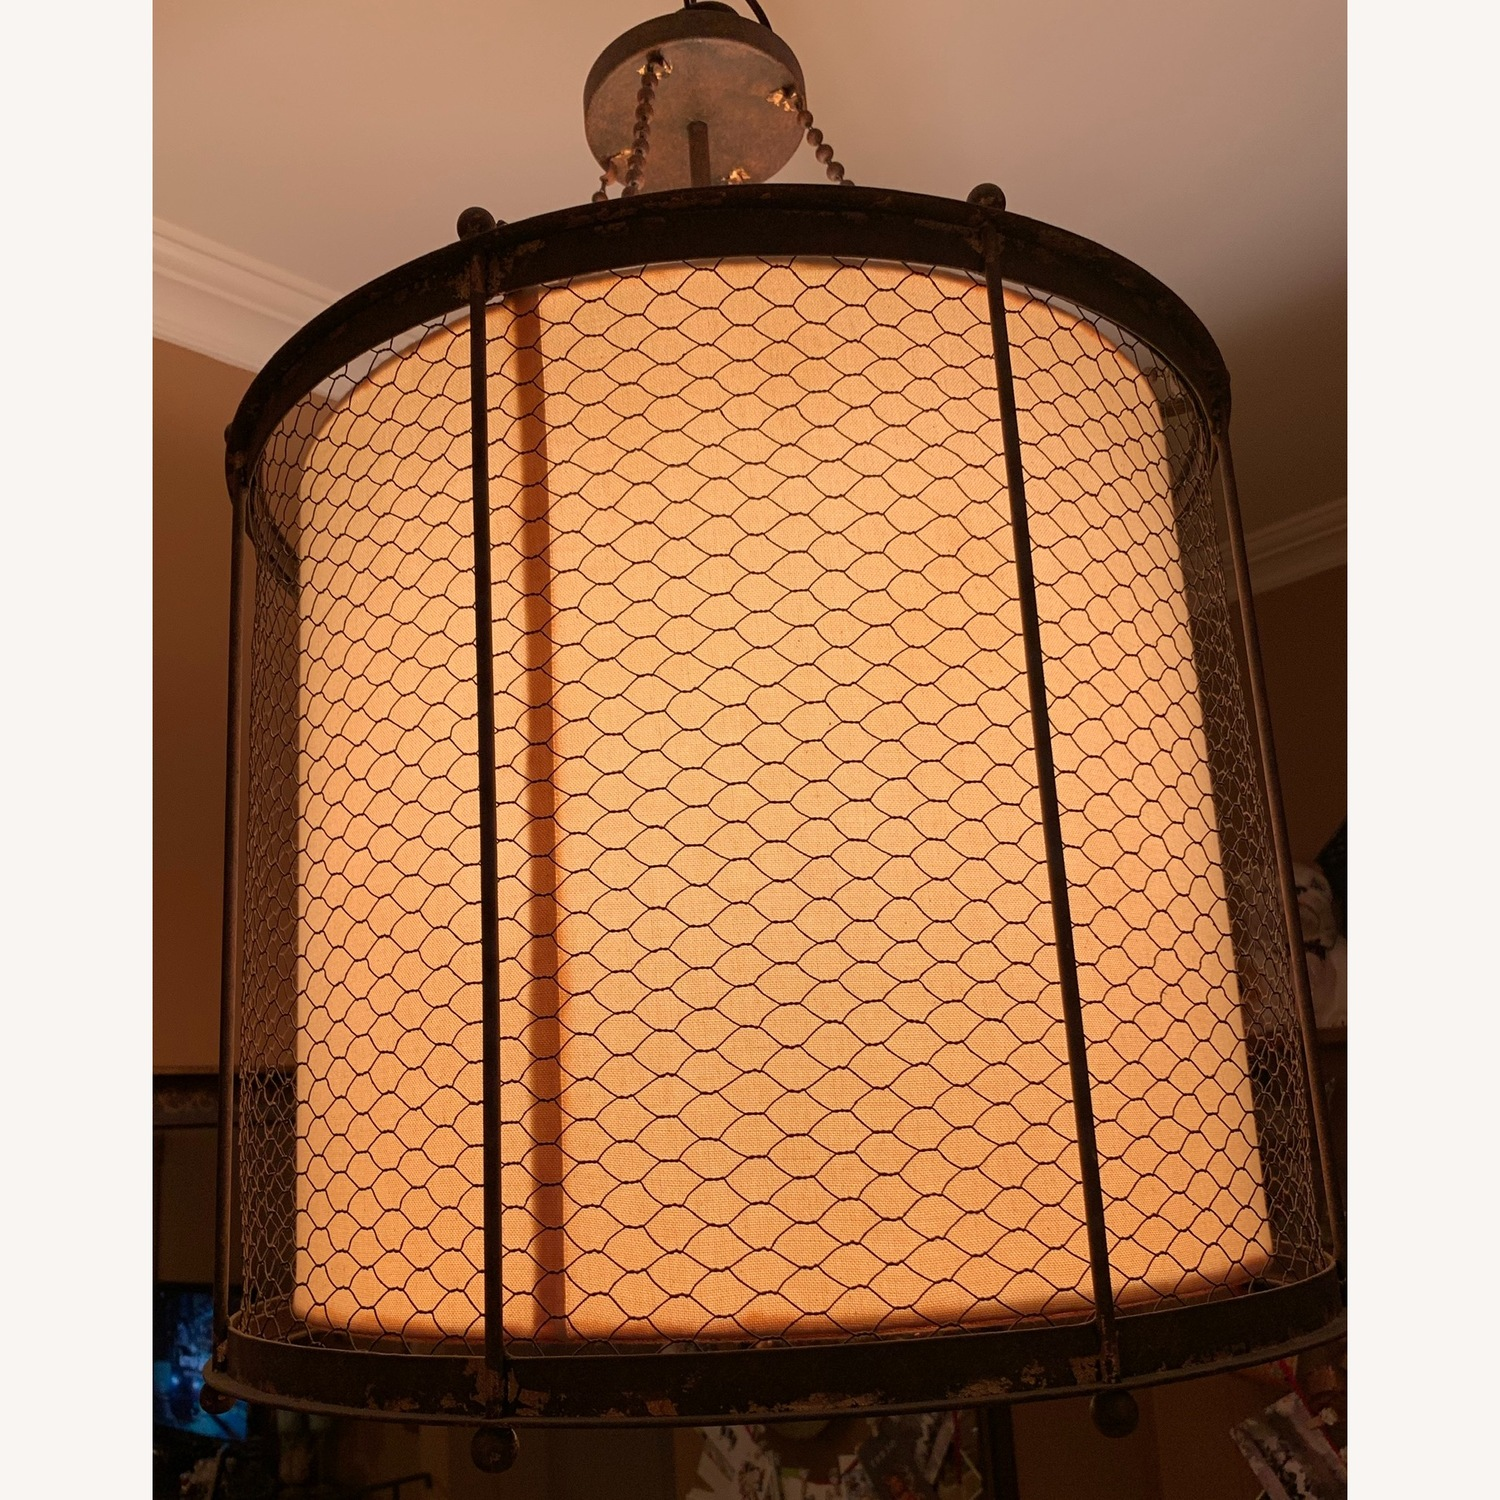 Ethan Allen Metal & Linen Barrel Ceiling Light - image-1